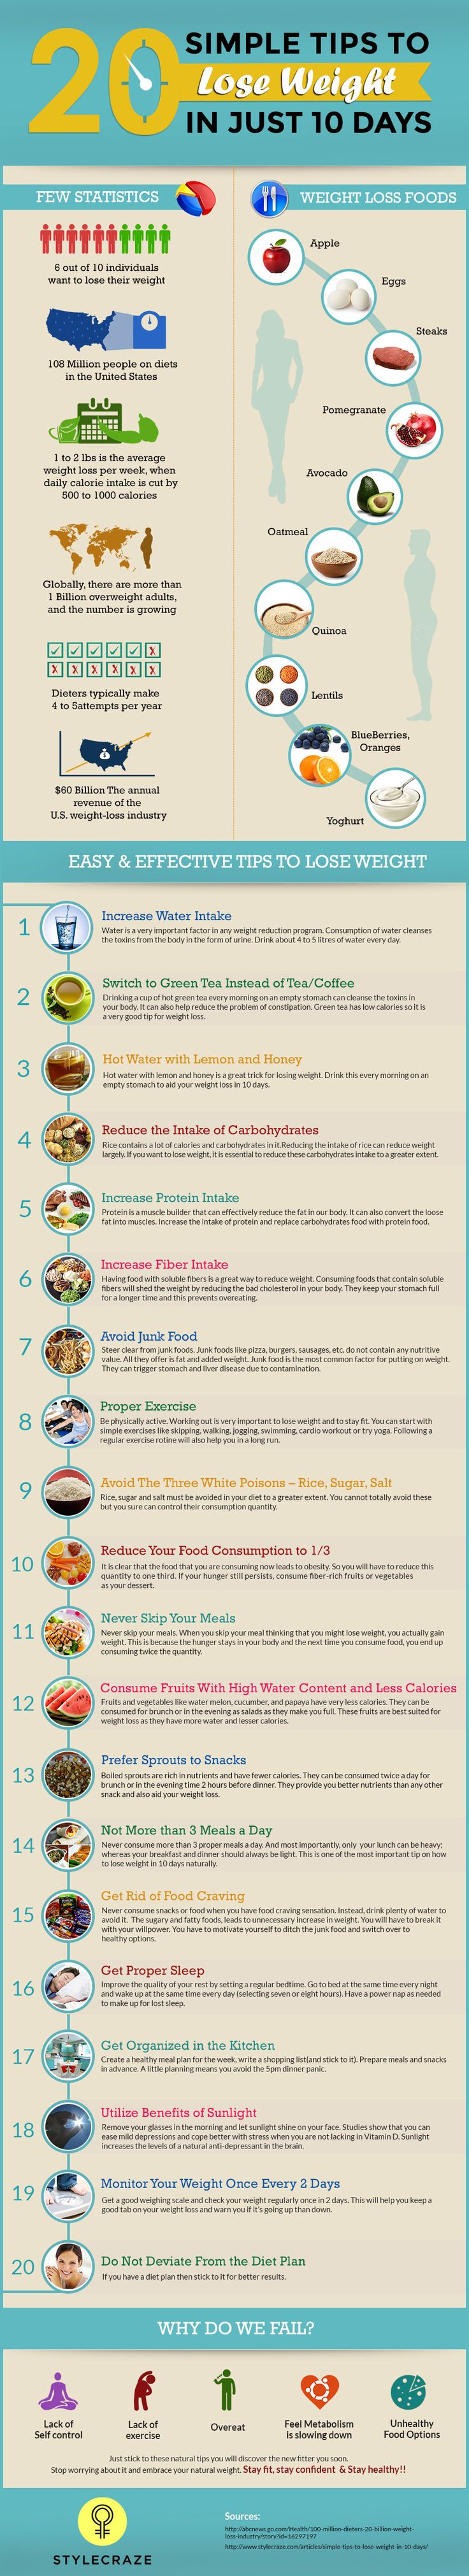 Loss weight : For starters, here is a 10 days' routine for you. It demonstrates what you should be eating, at what time and in what quantities